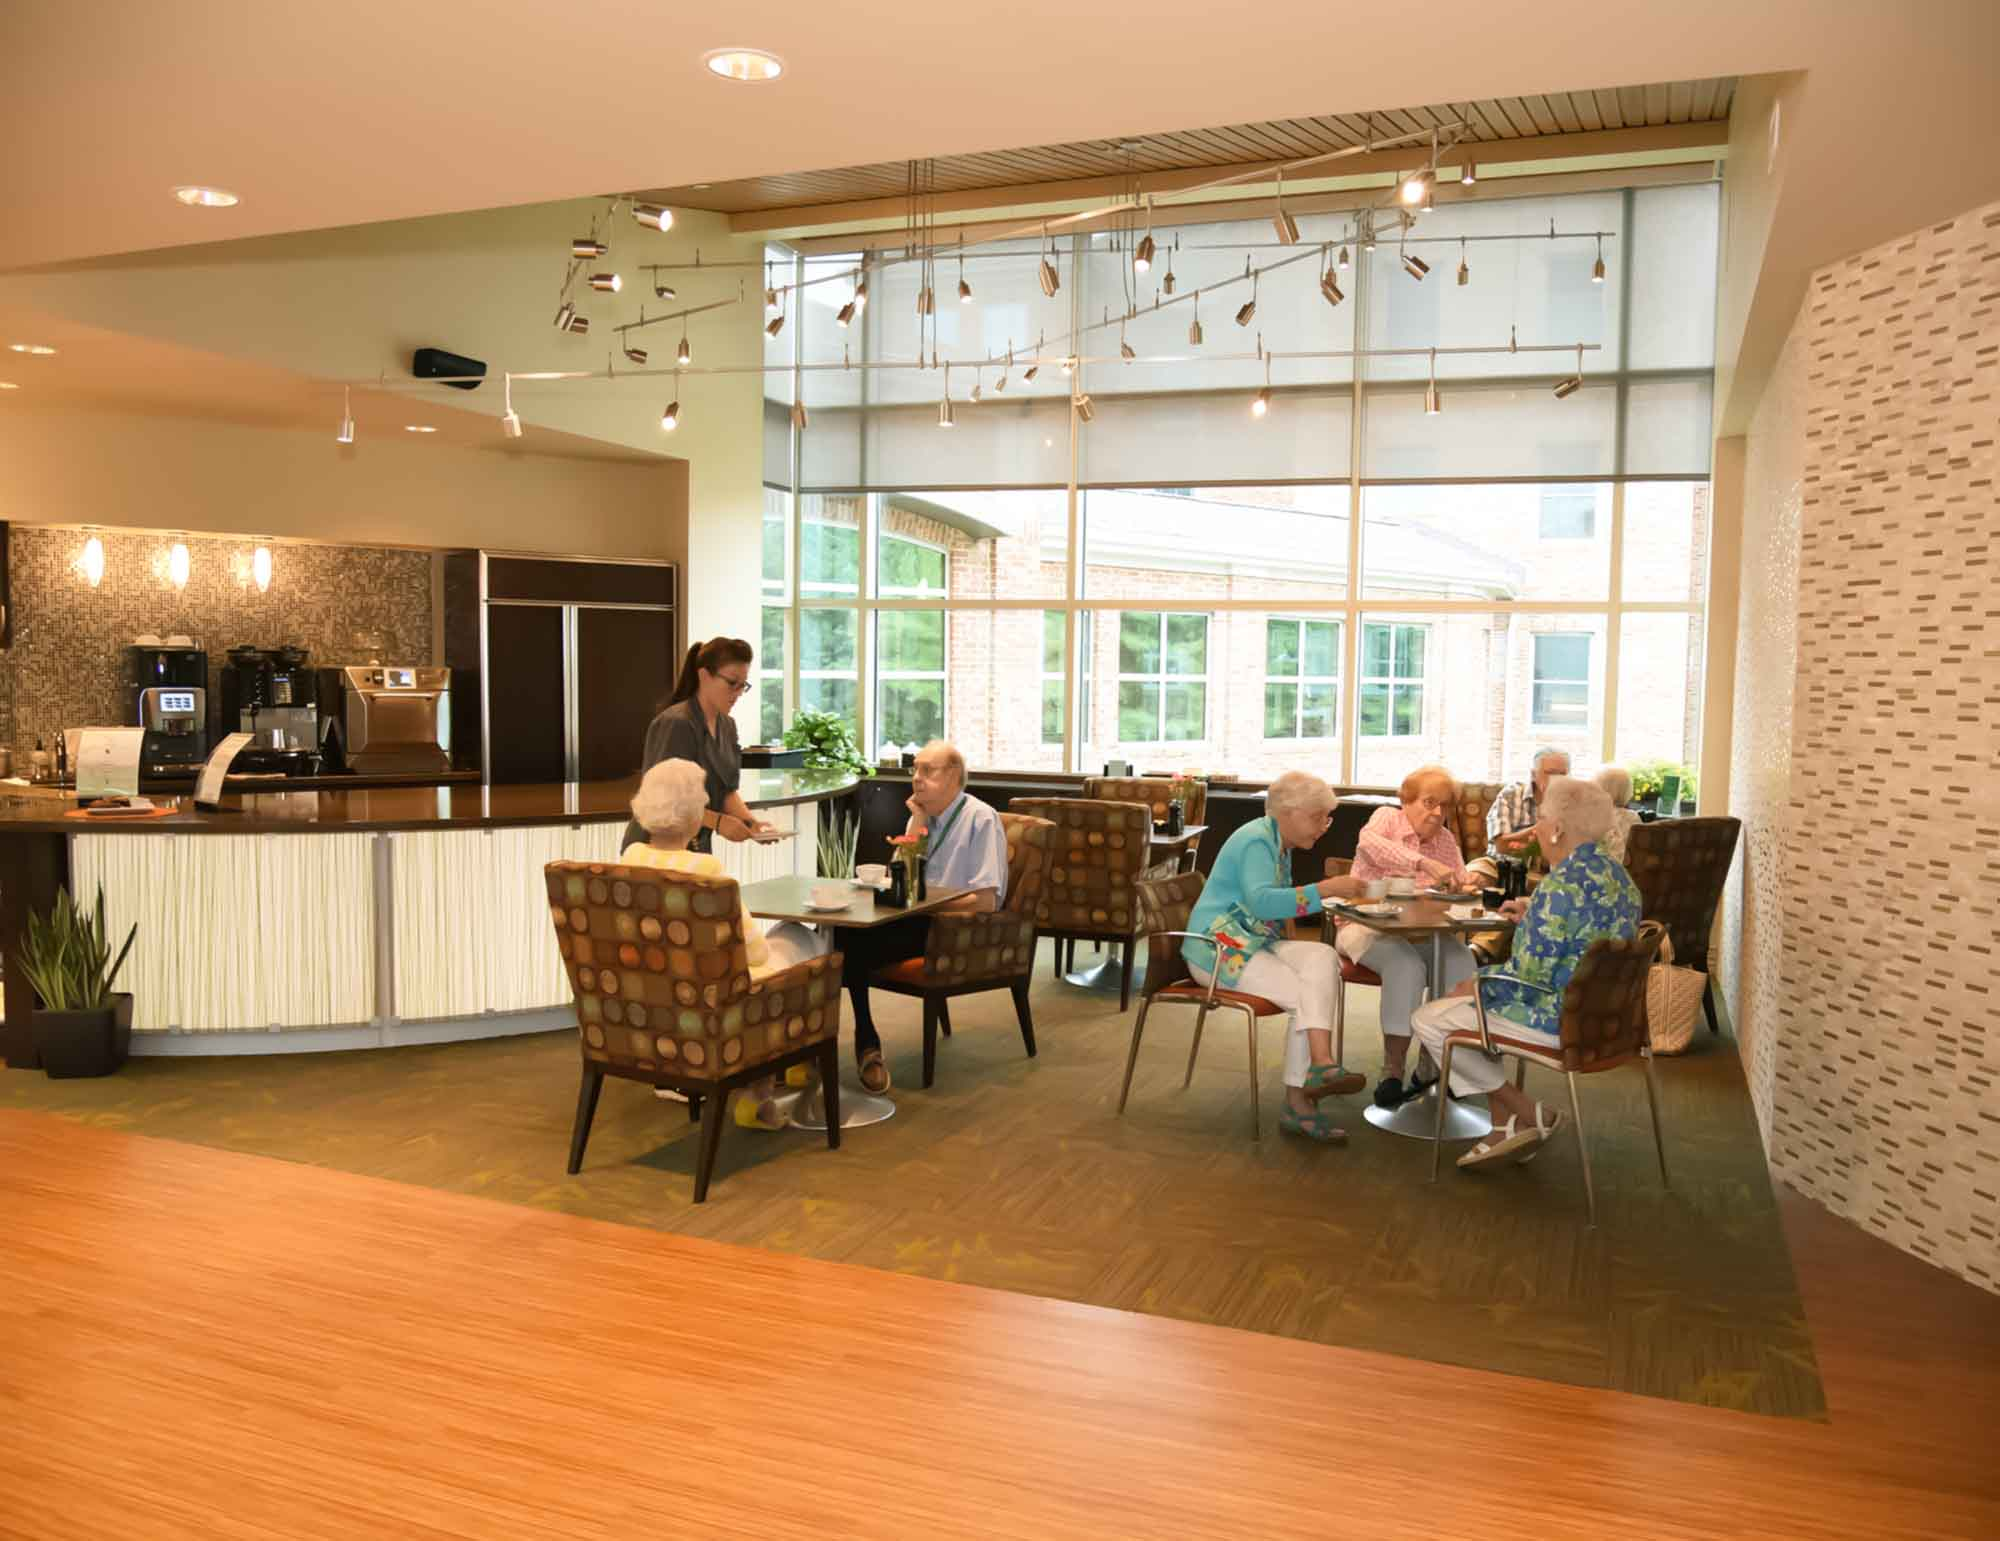 dining areas with residents eating